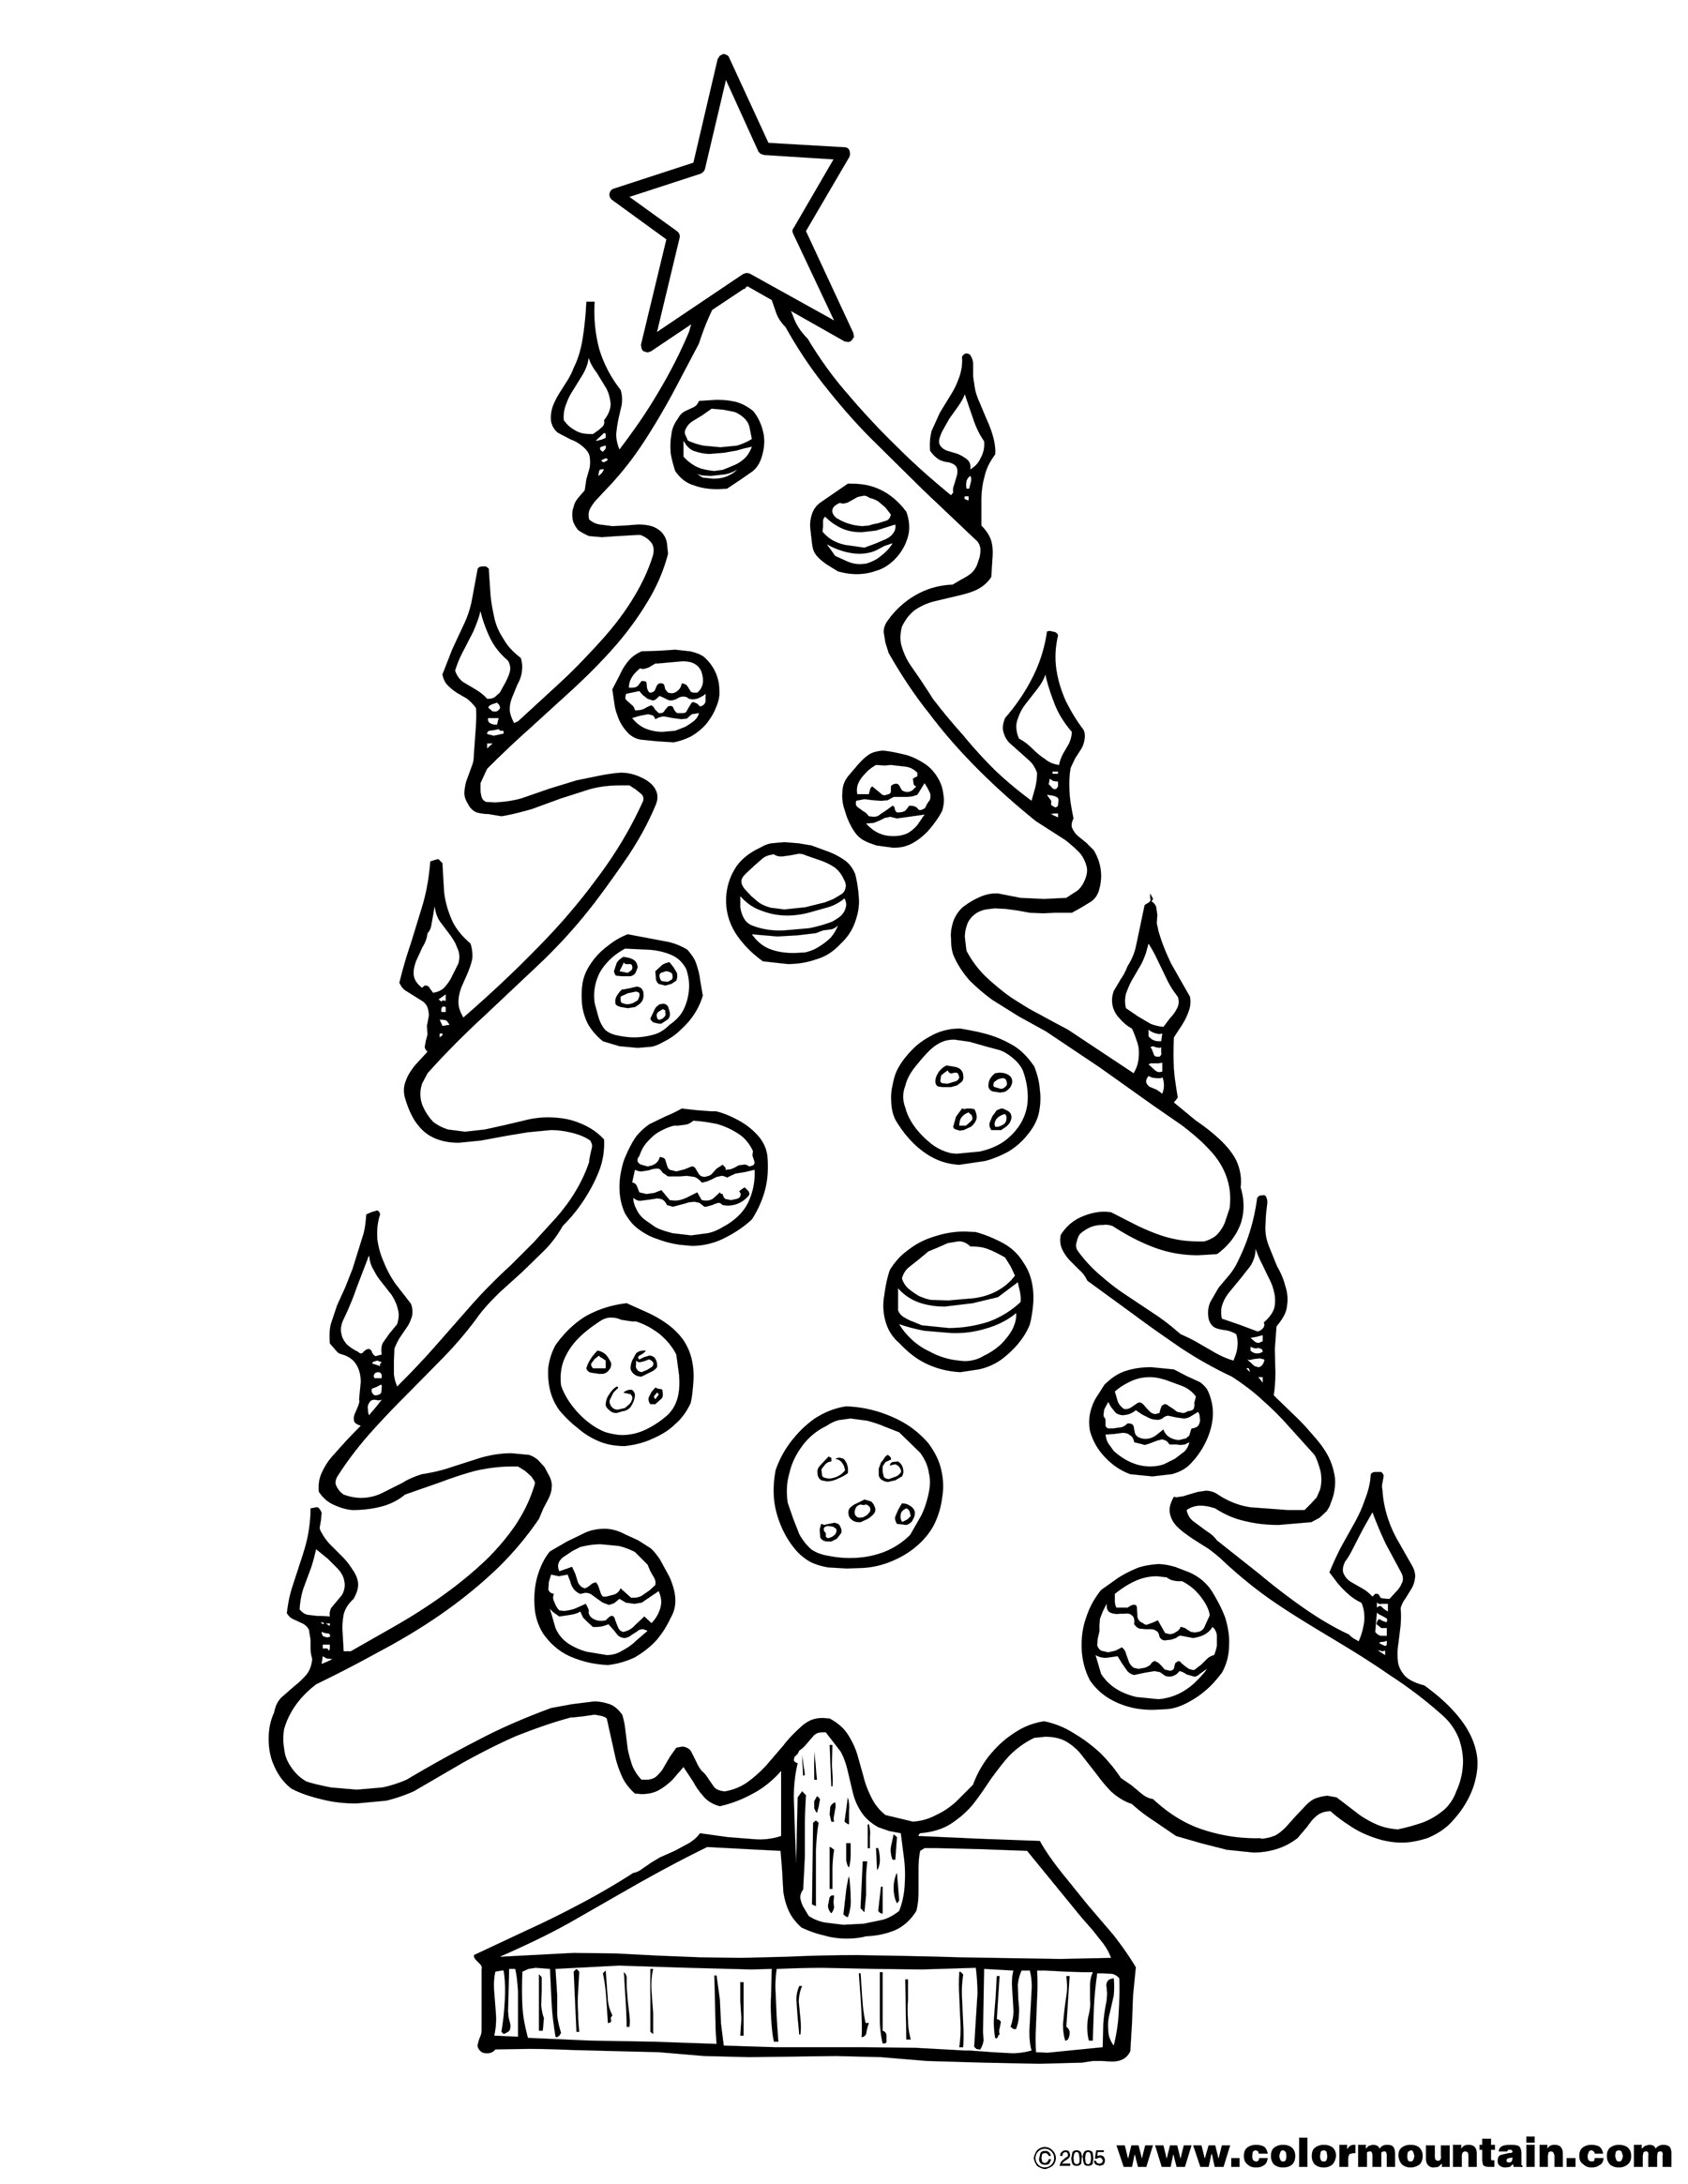 coloring pages christmas tree lights christmas tree with lights template coloring page pages coloring tree lights christmas